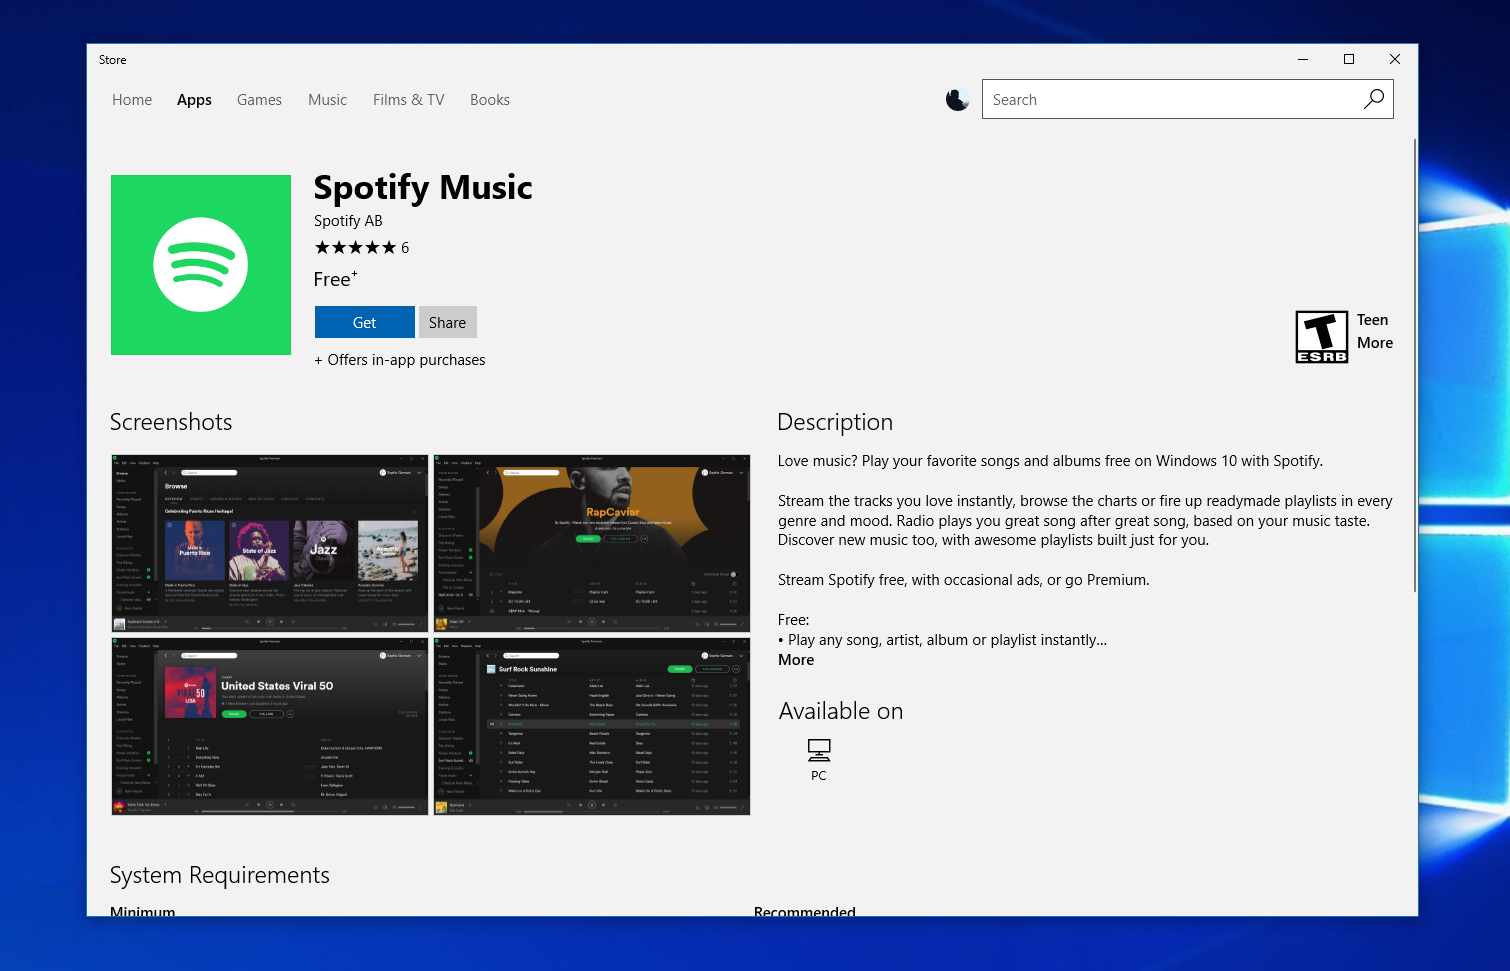 Spotify's developers give an intelligent response to those